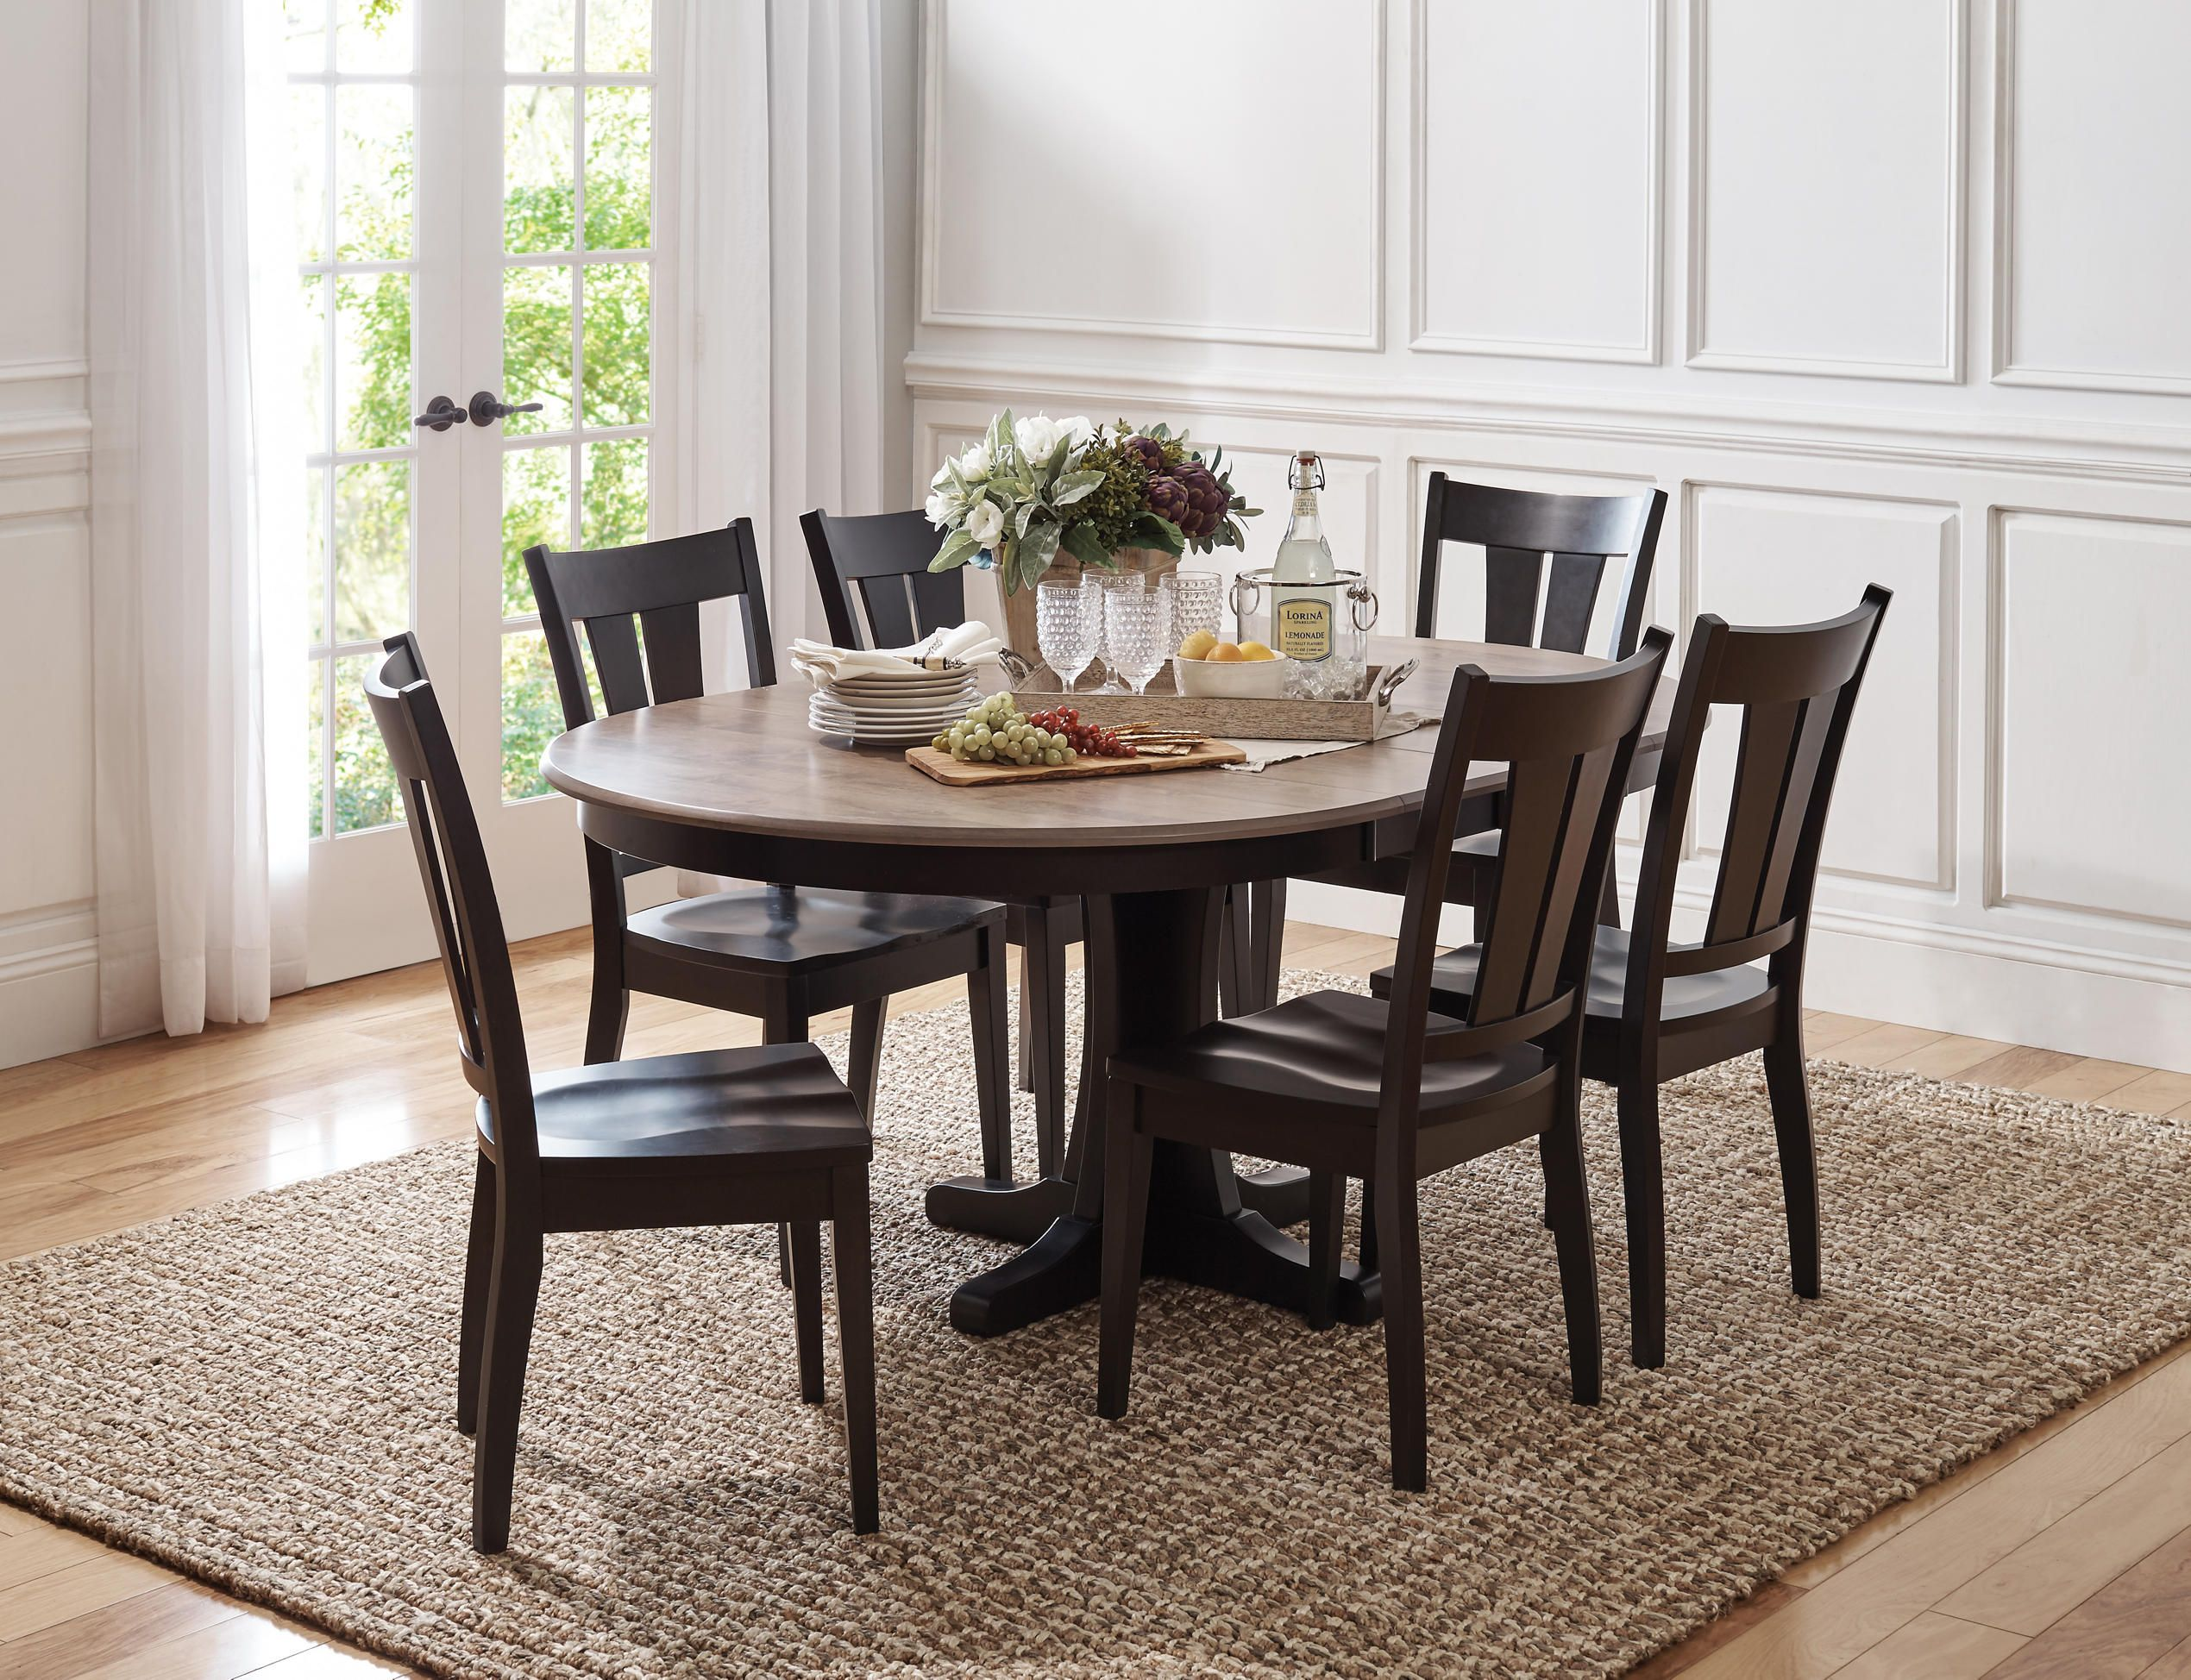 Made In The USA Of Solid Maple This Beautiful Sterling Dining Collection Set Is